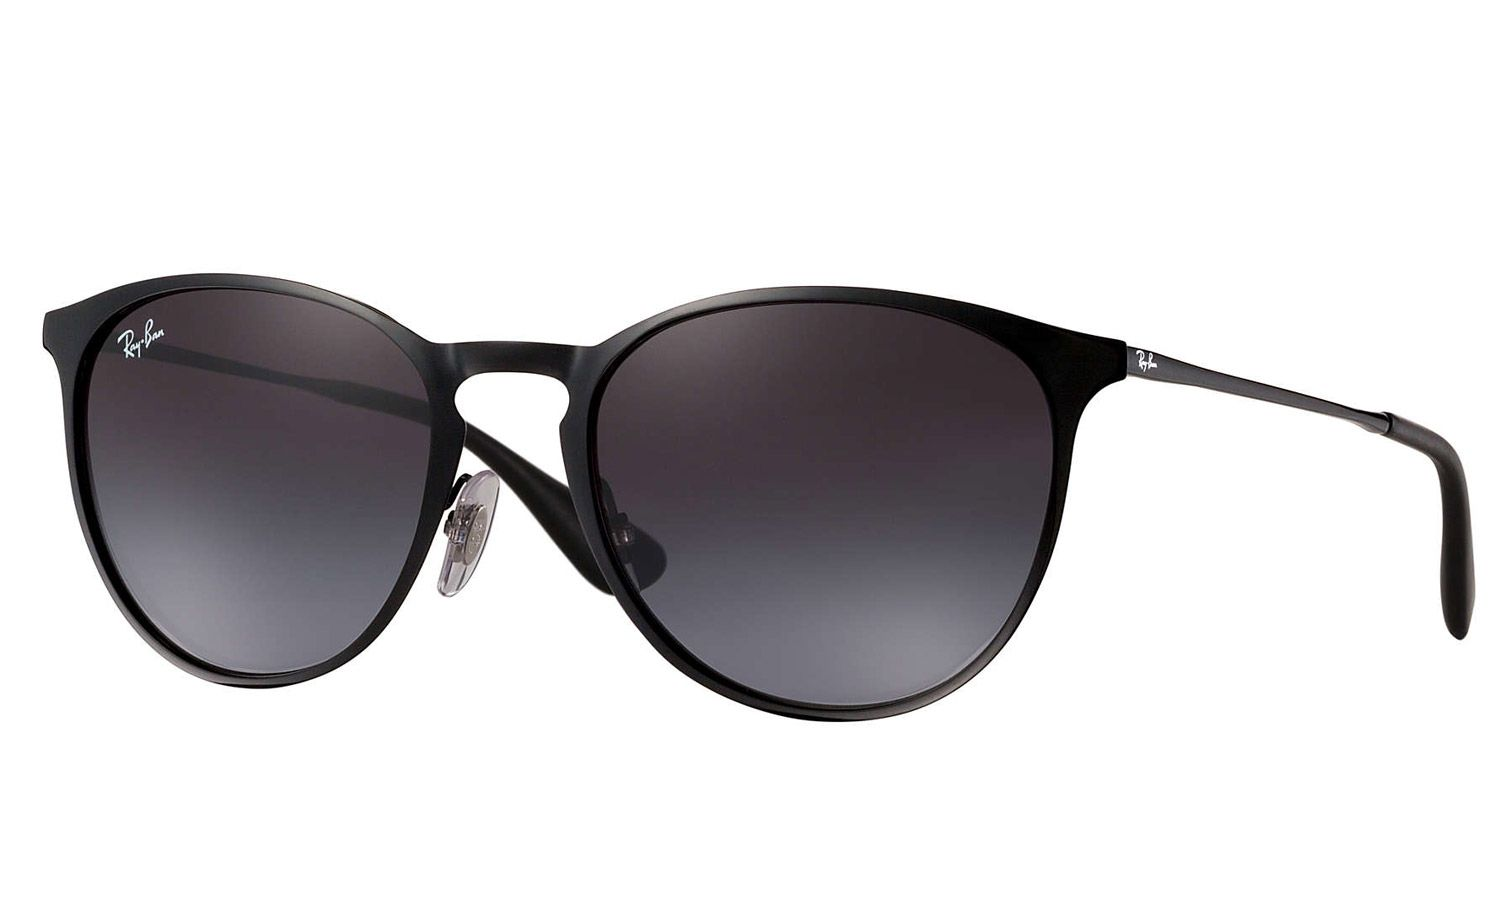 7c5999cf5b587 Ray-Ban Erika Metal Black And Grey Gradient Sunglasses - RB3539 002 8G 54-19